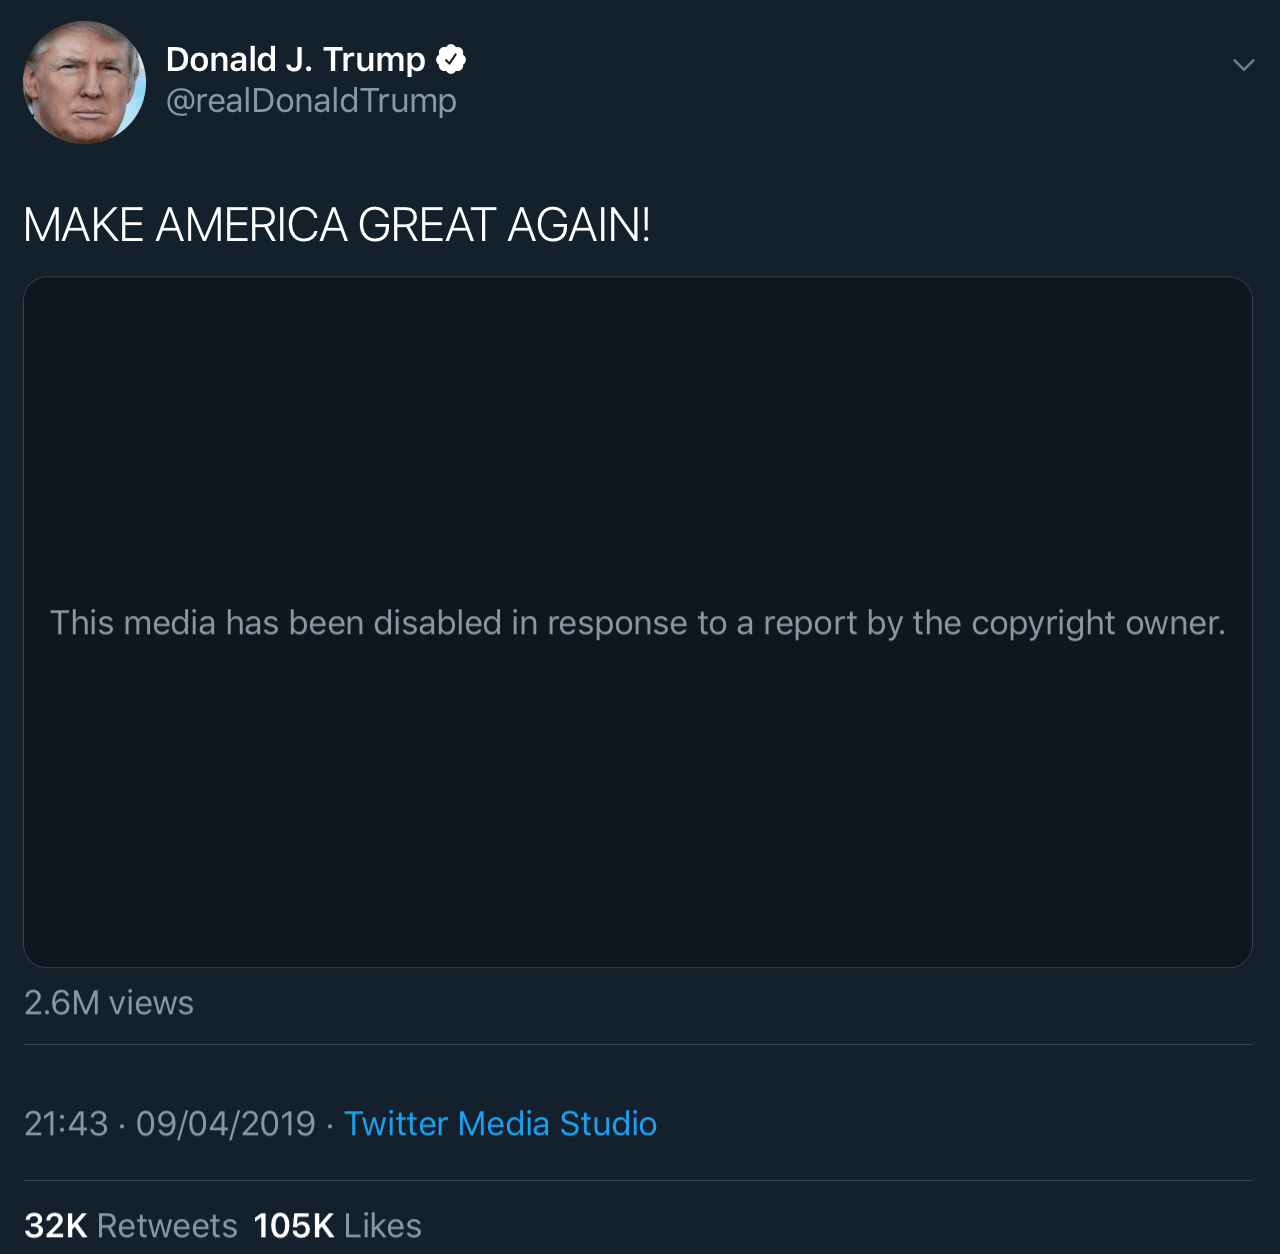 President Trump's tweet with the video that was blocked due to a copyright claim from Warner Bros.